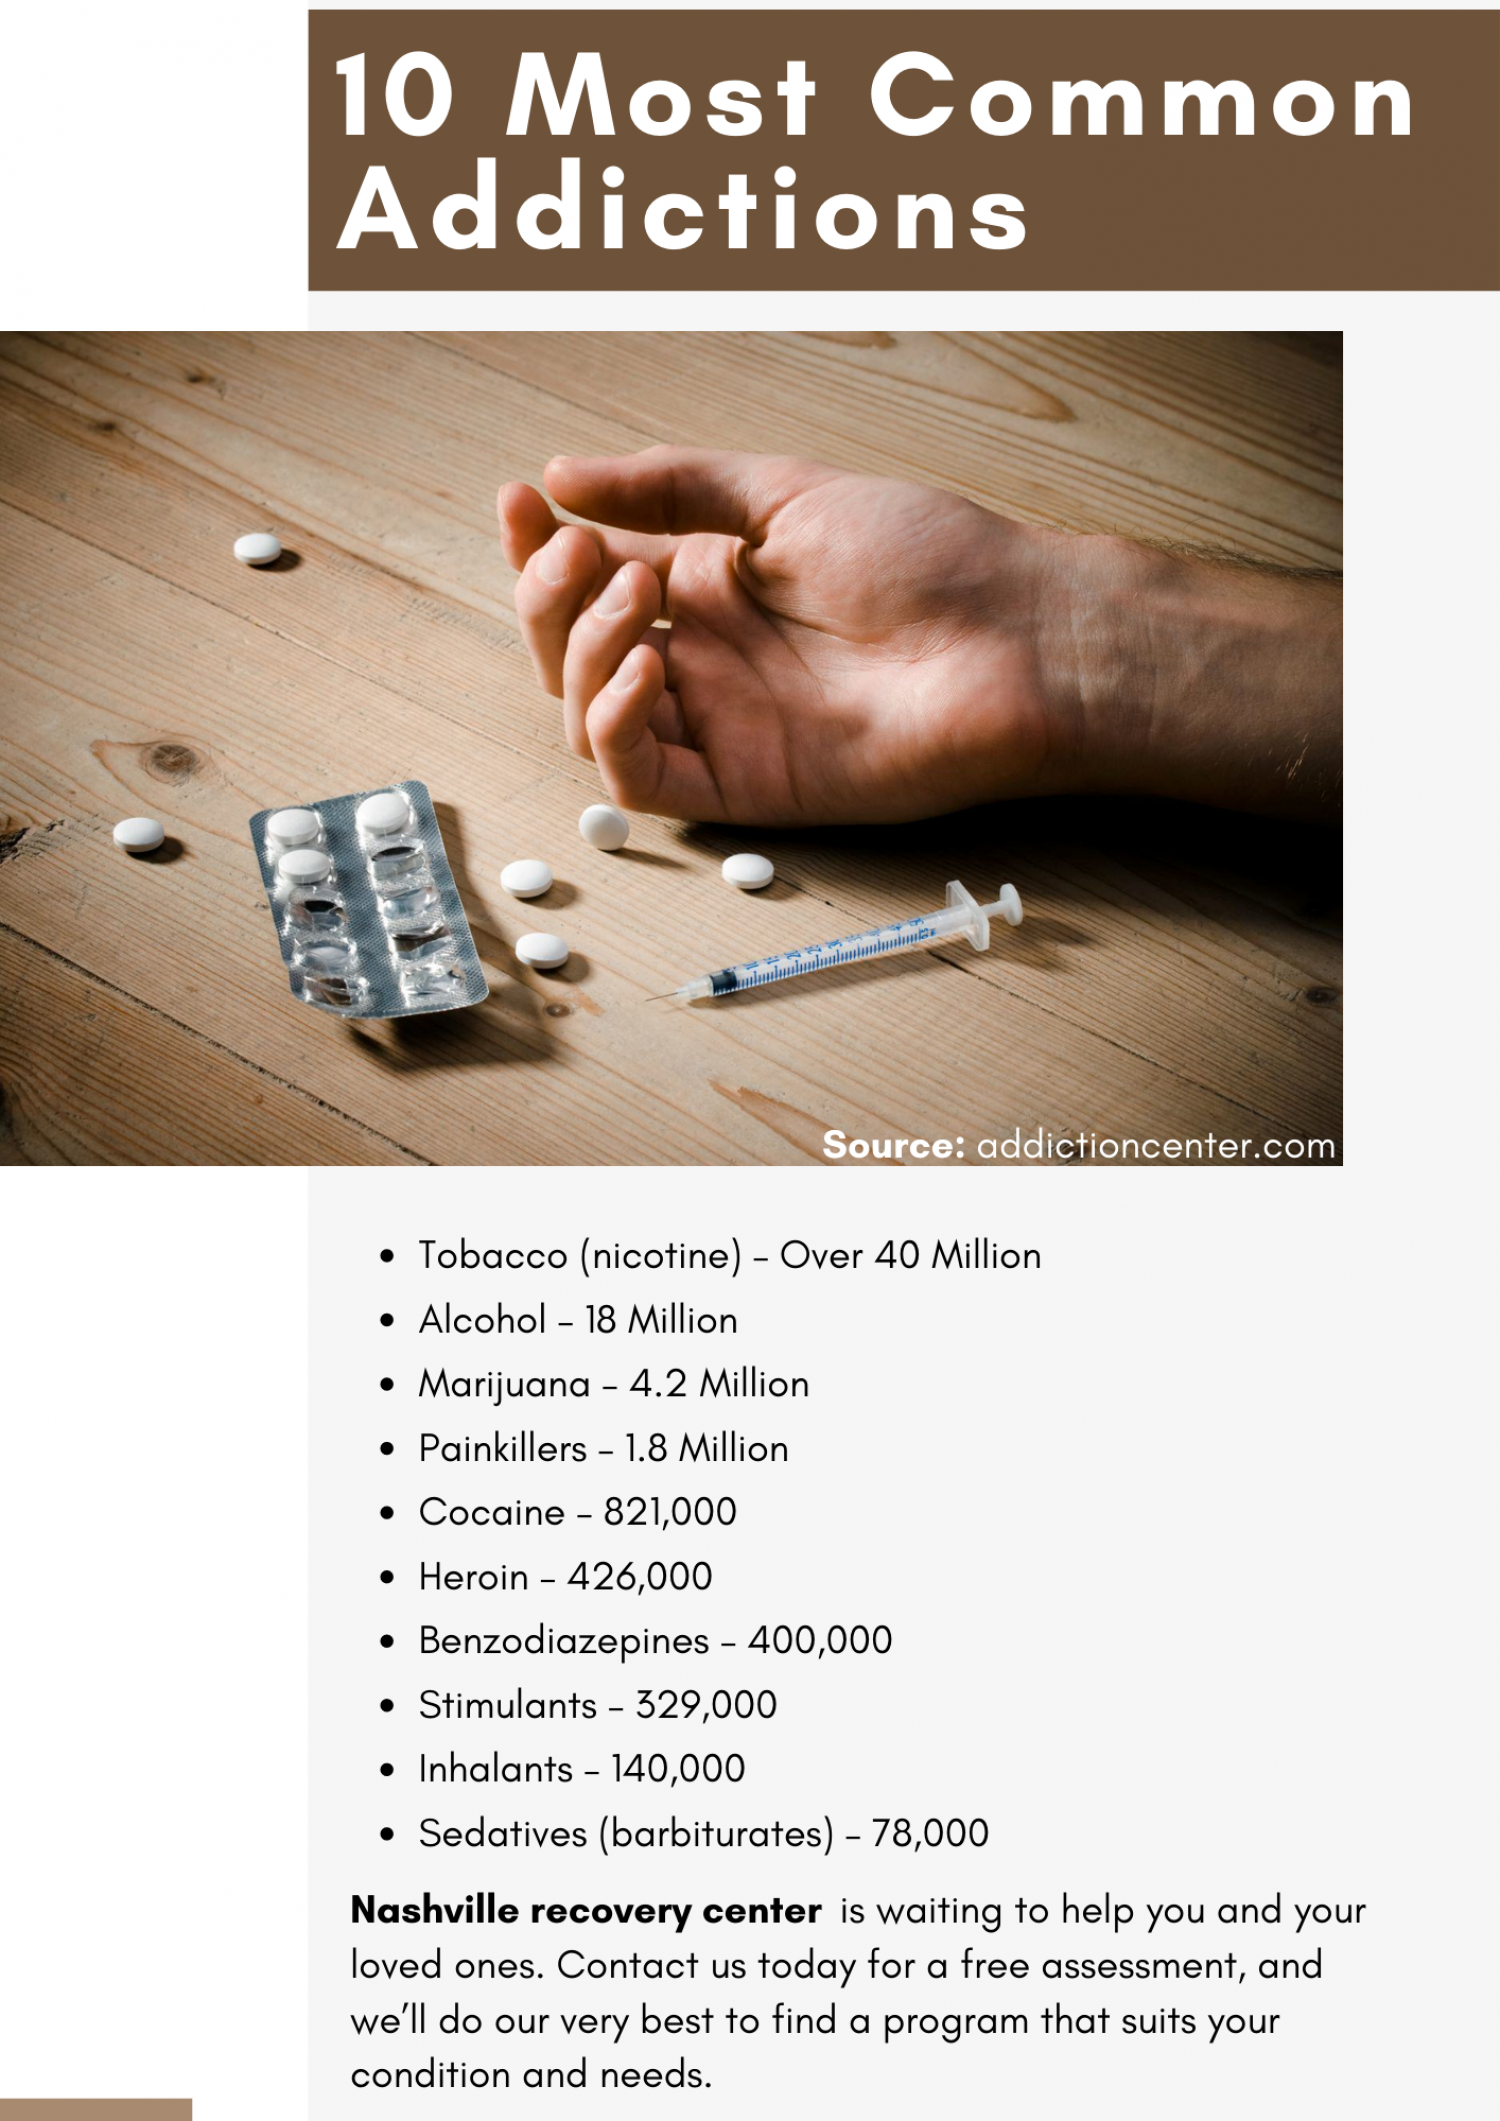 10 Most Common Addictions Infographic